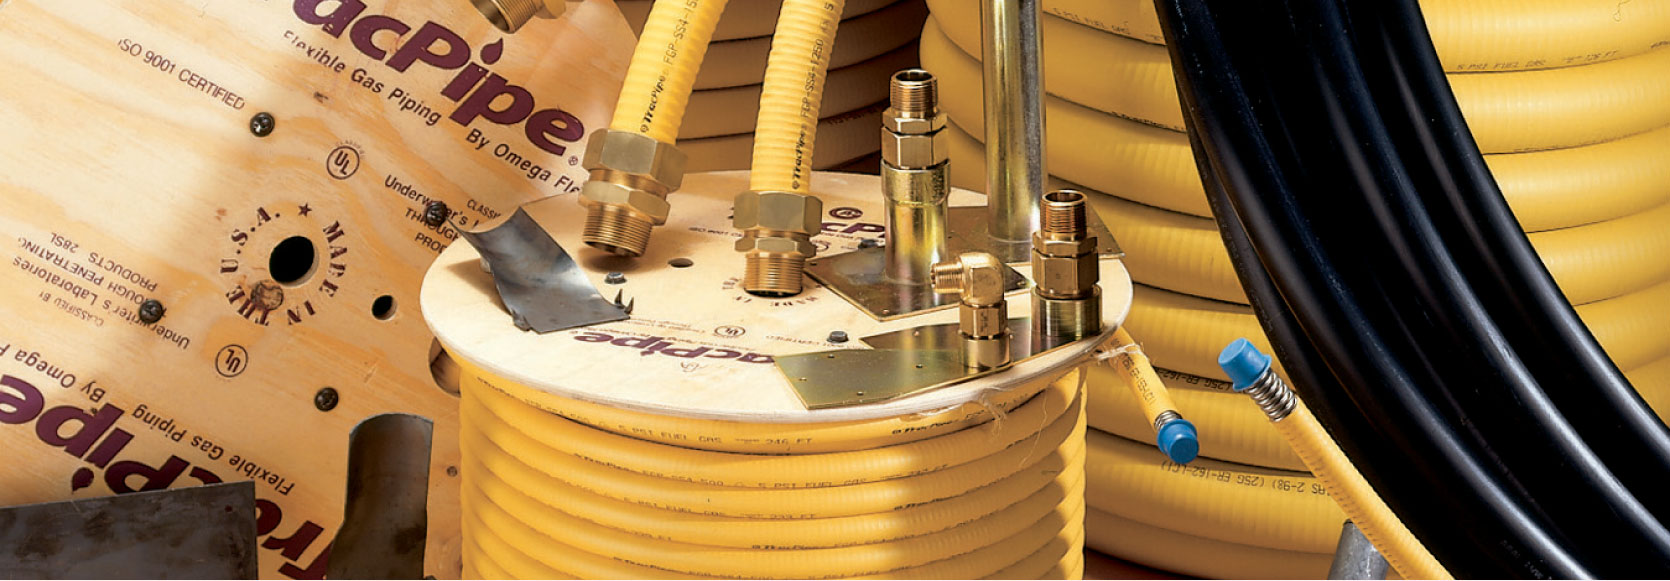 OmegaFlex | Gas Piping | Flexible Gas Piping | About - TracPipe